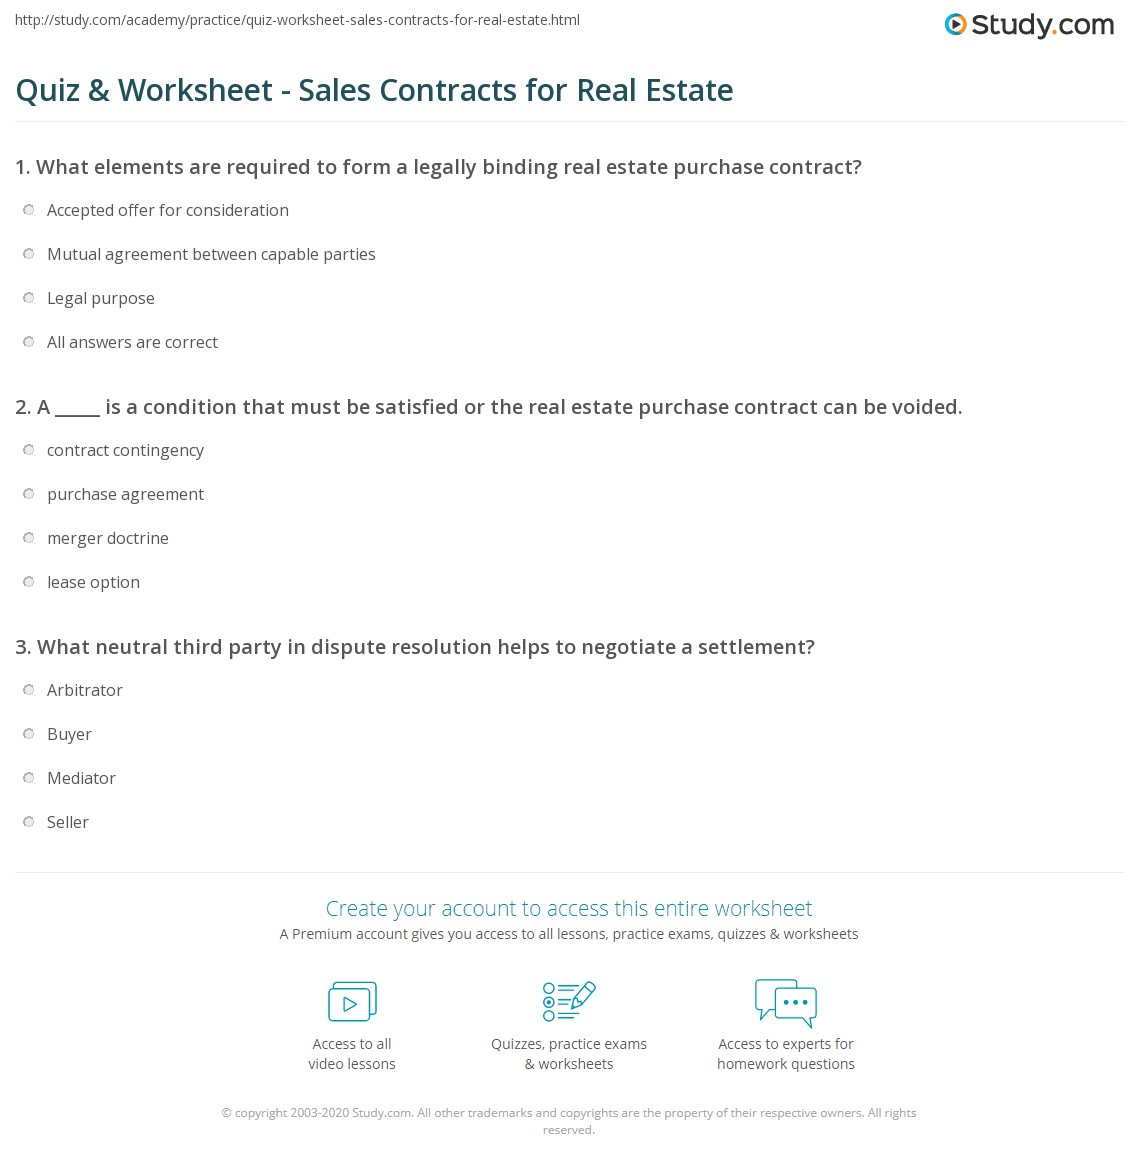 Quiz Worksheet Sales Contracts for Real Estate – Sales Contracts